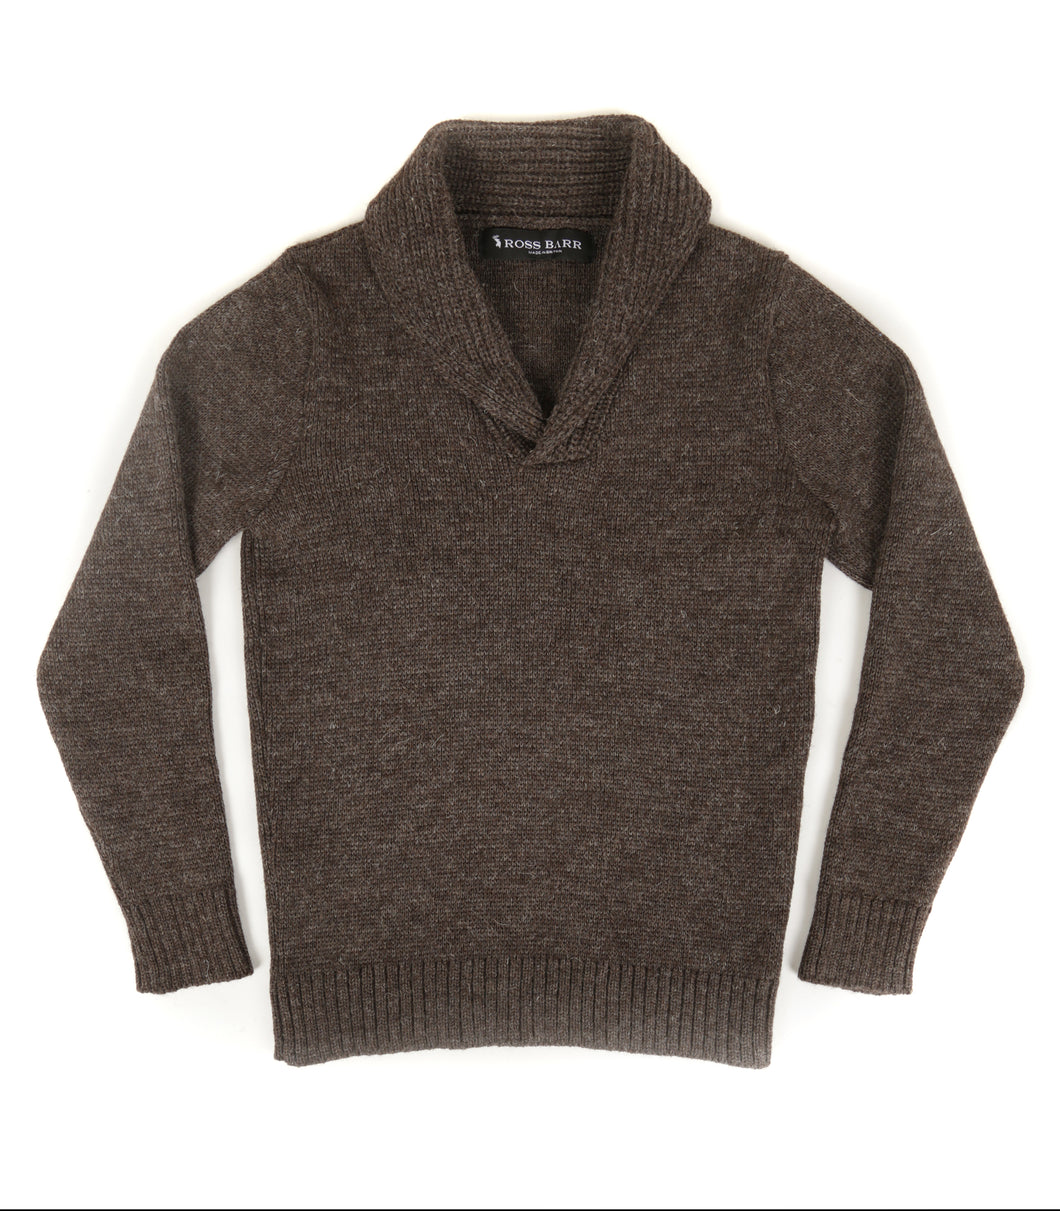 The Hoyland (Bark) - Ross Barr - Designer British Men's Knitwear